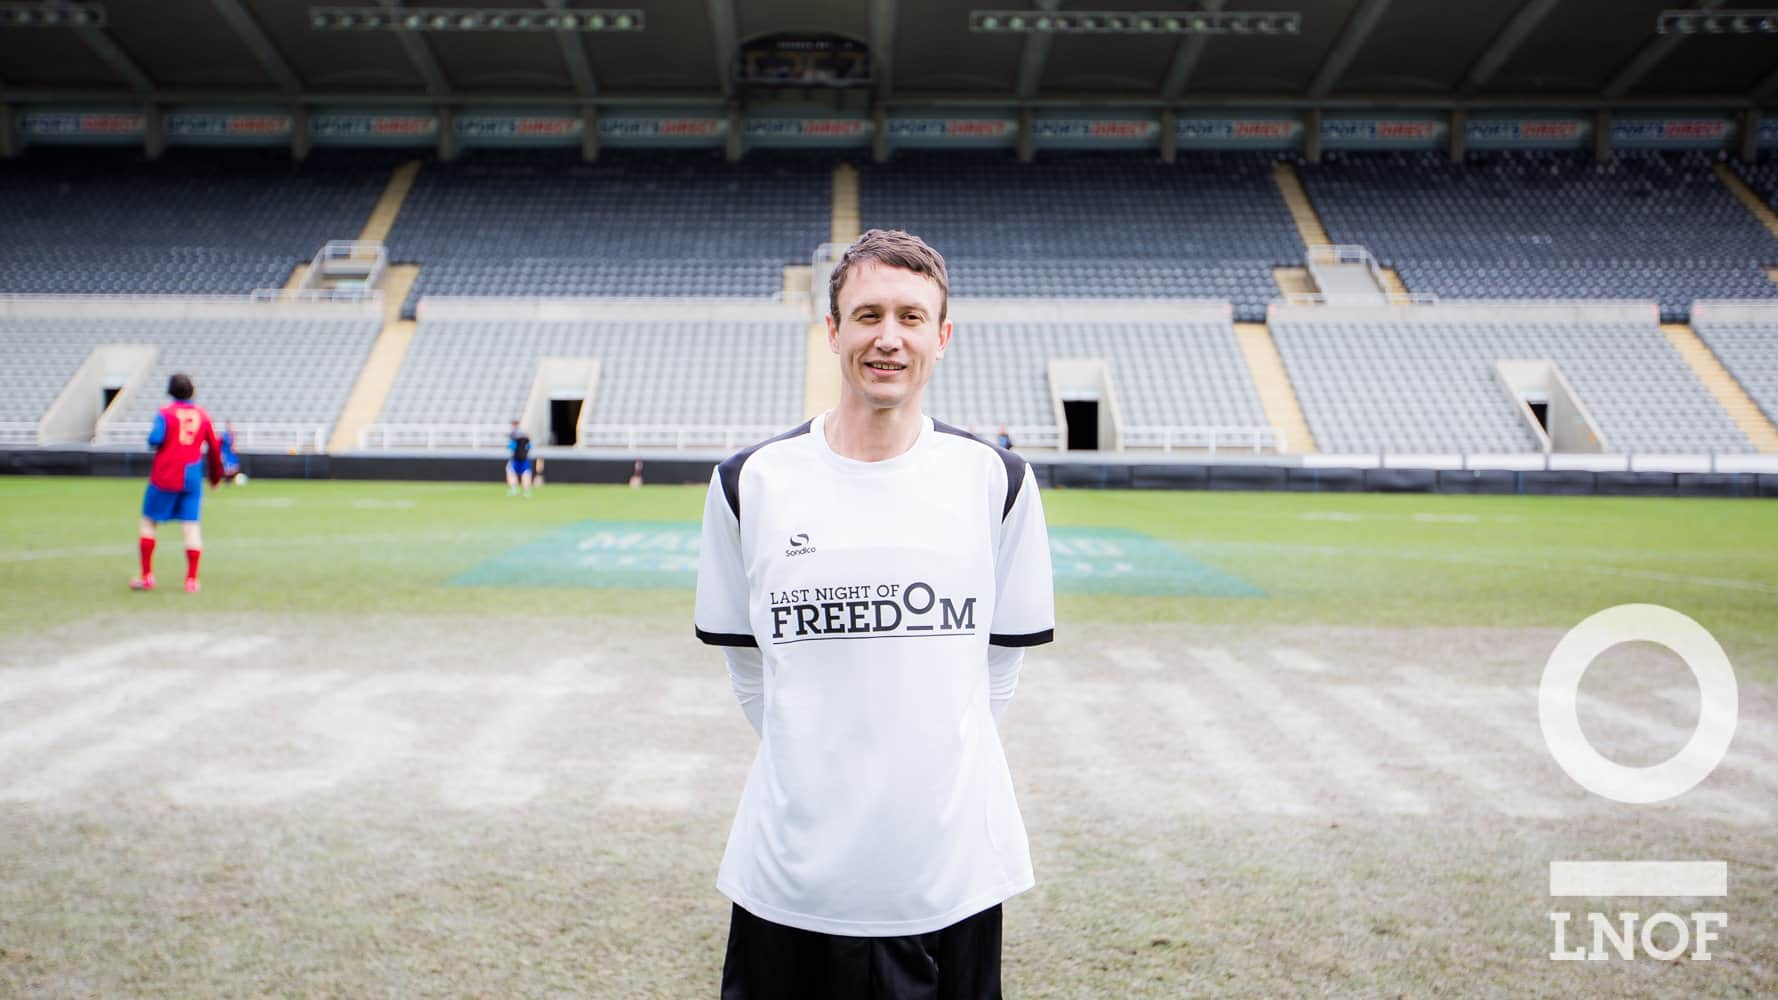 Sean Palmer on the pitch at St James'